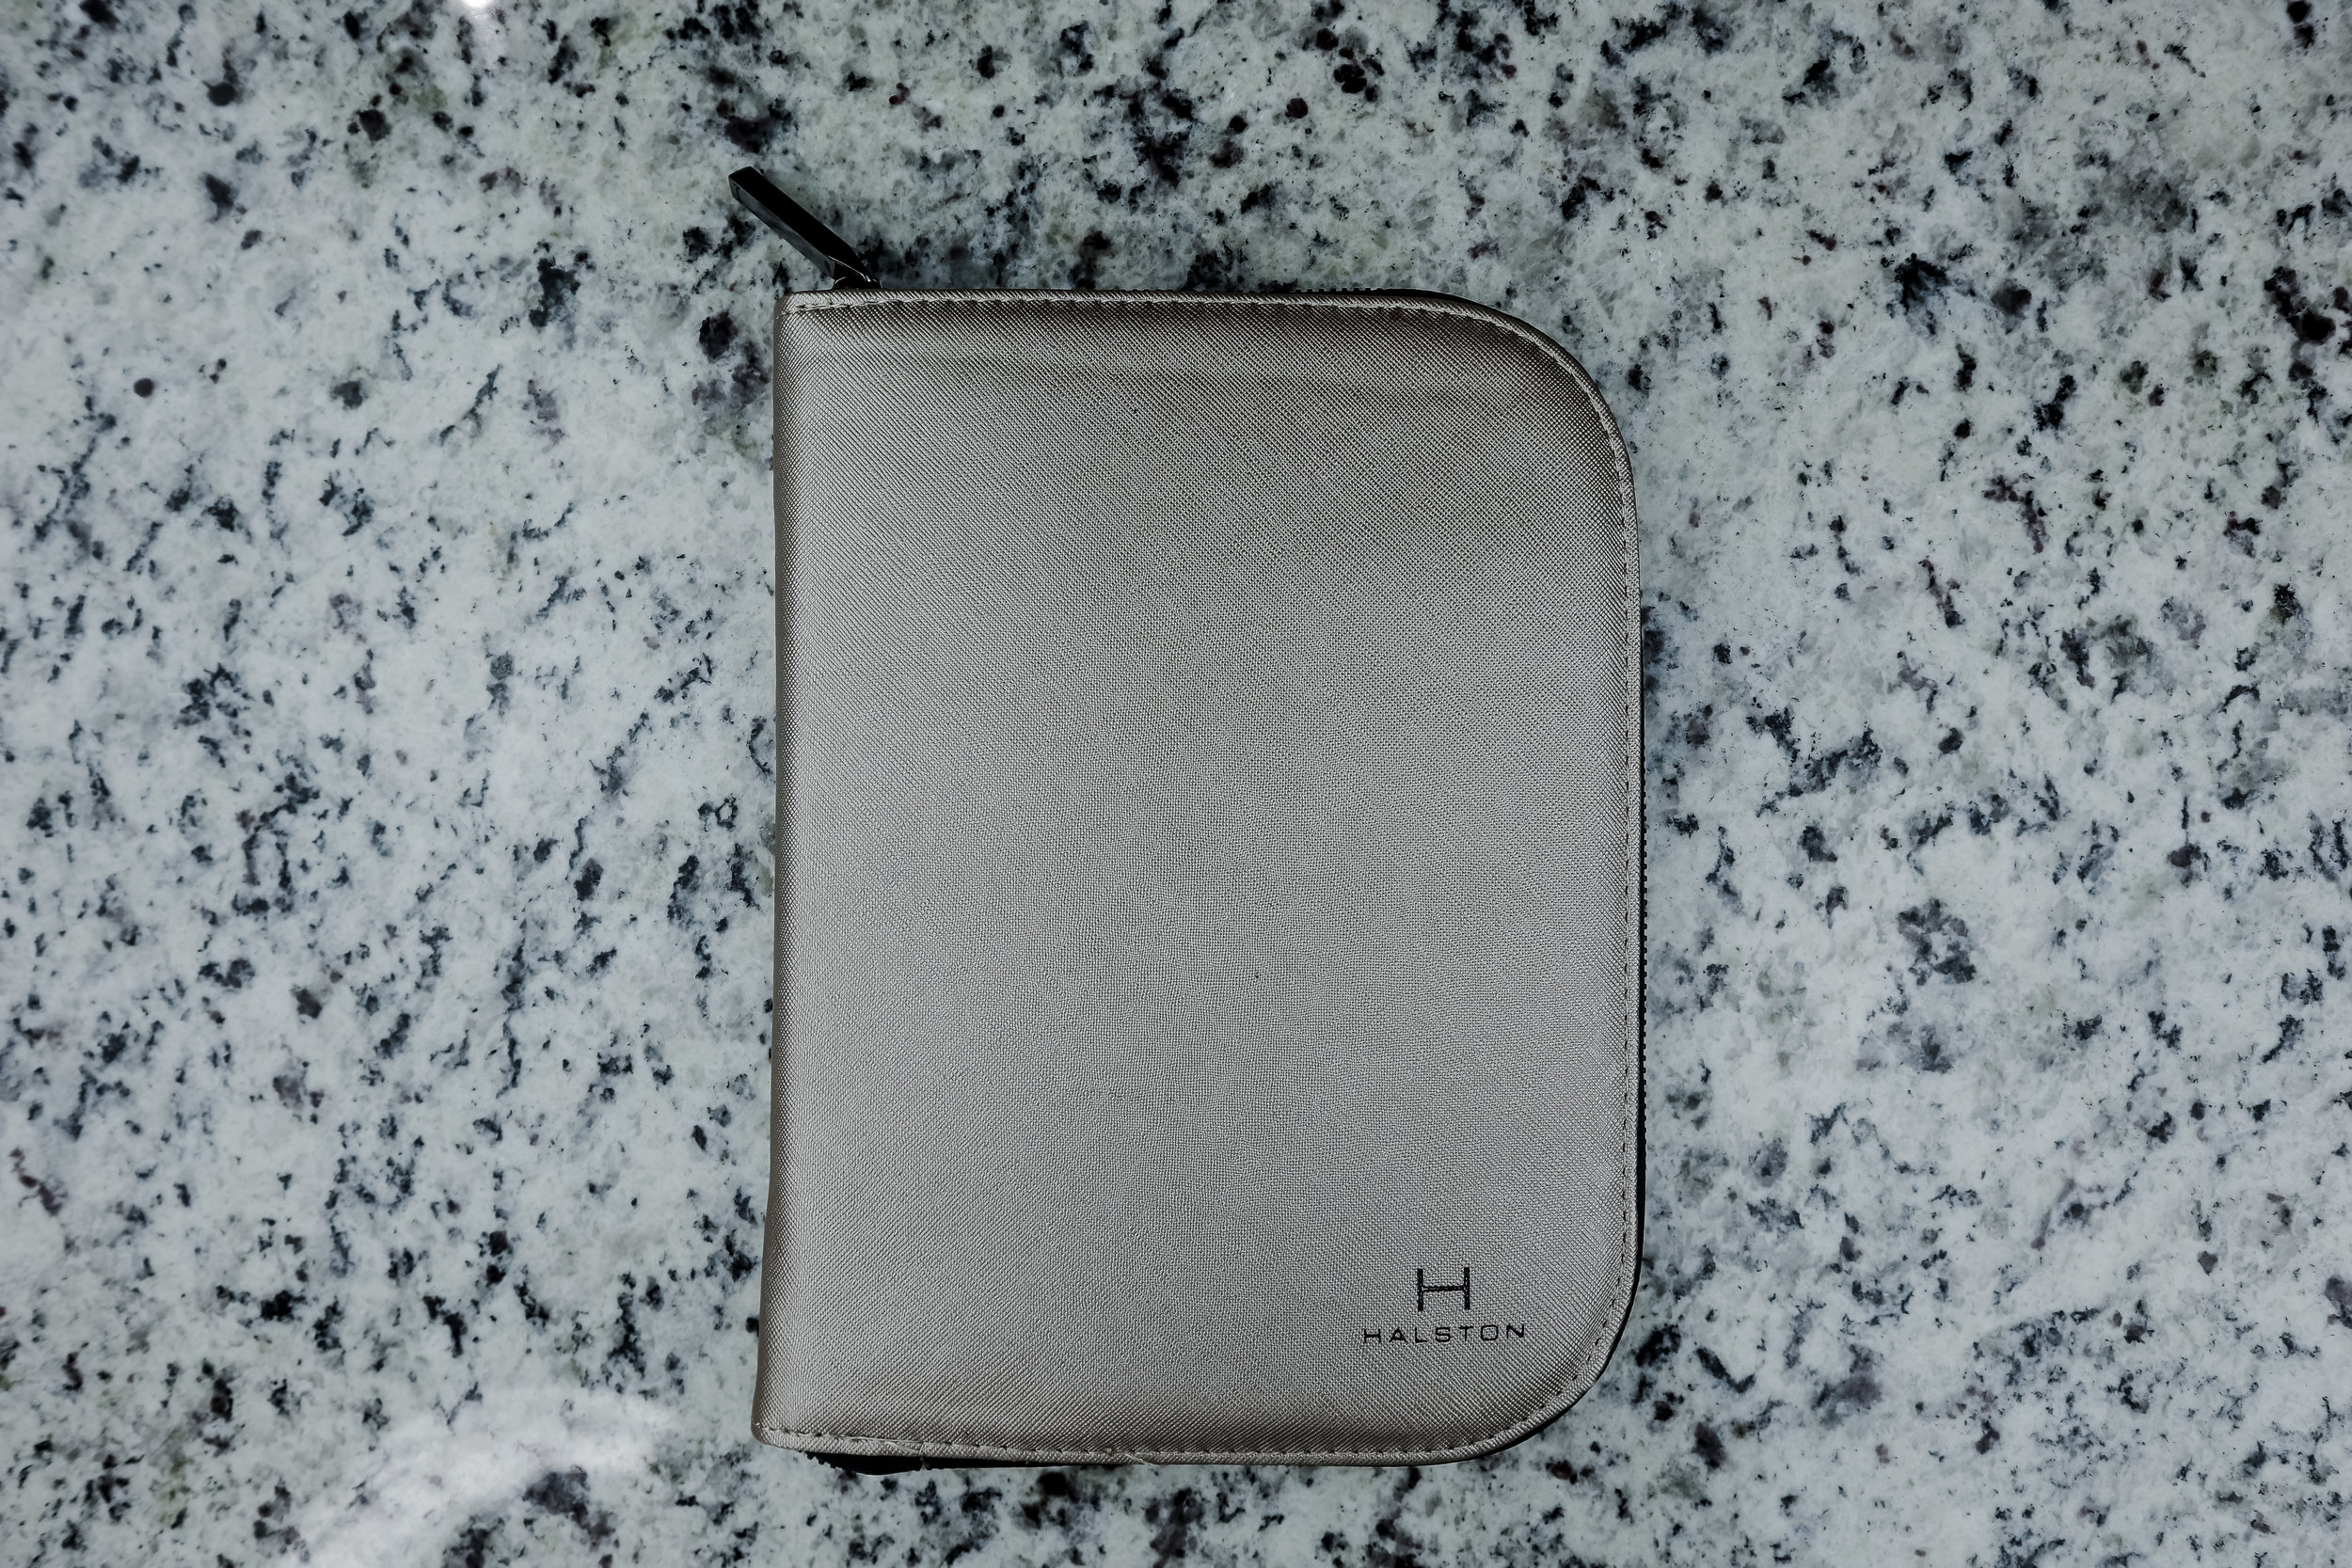 H HALSTON JEWELRY PORTFOLIO ($48) - It keeps your jewelry organized and tangle-free!